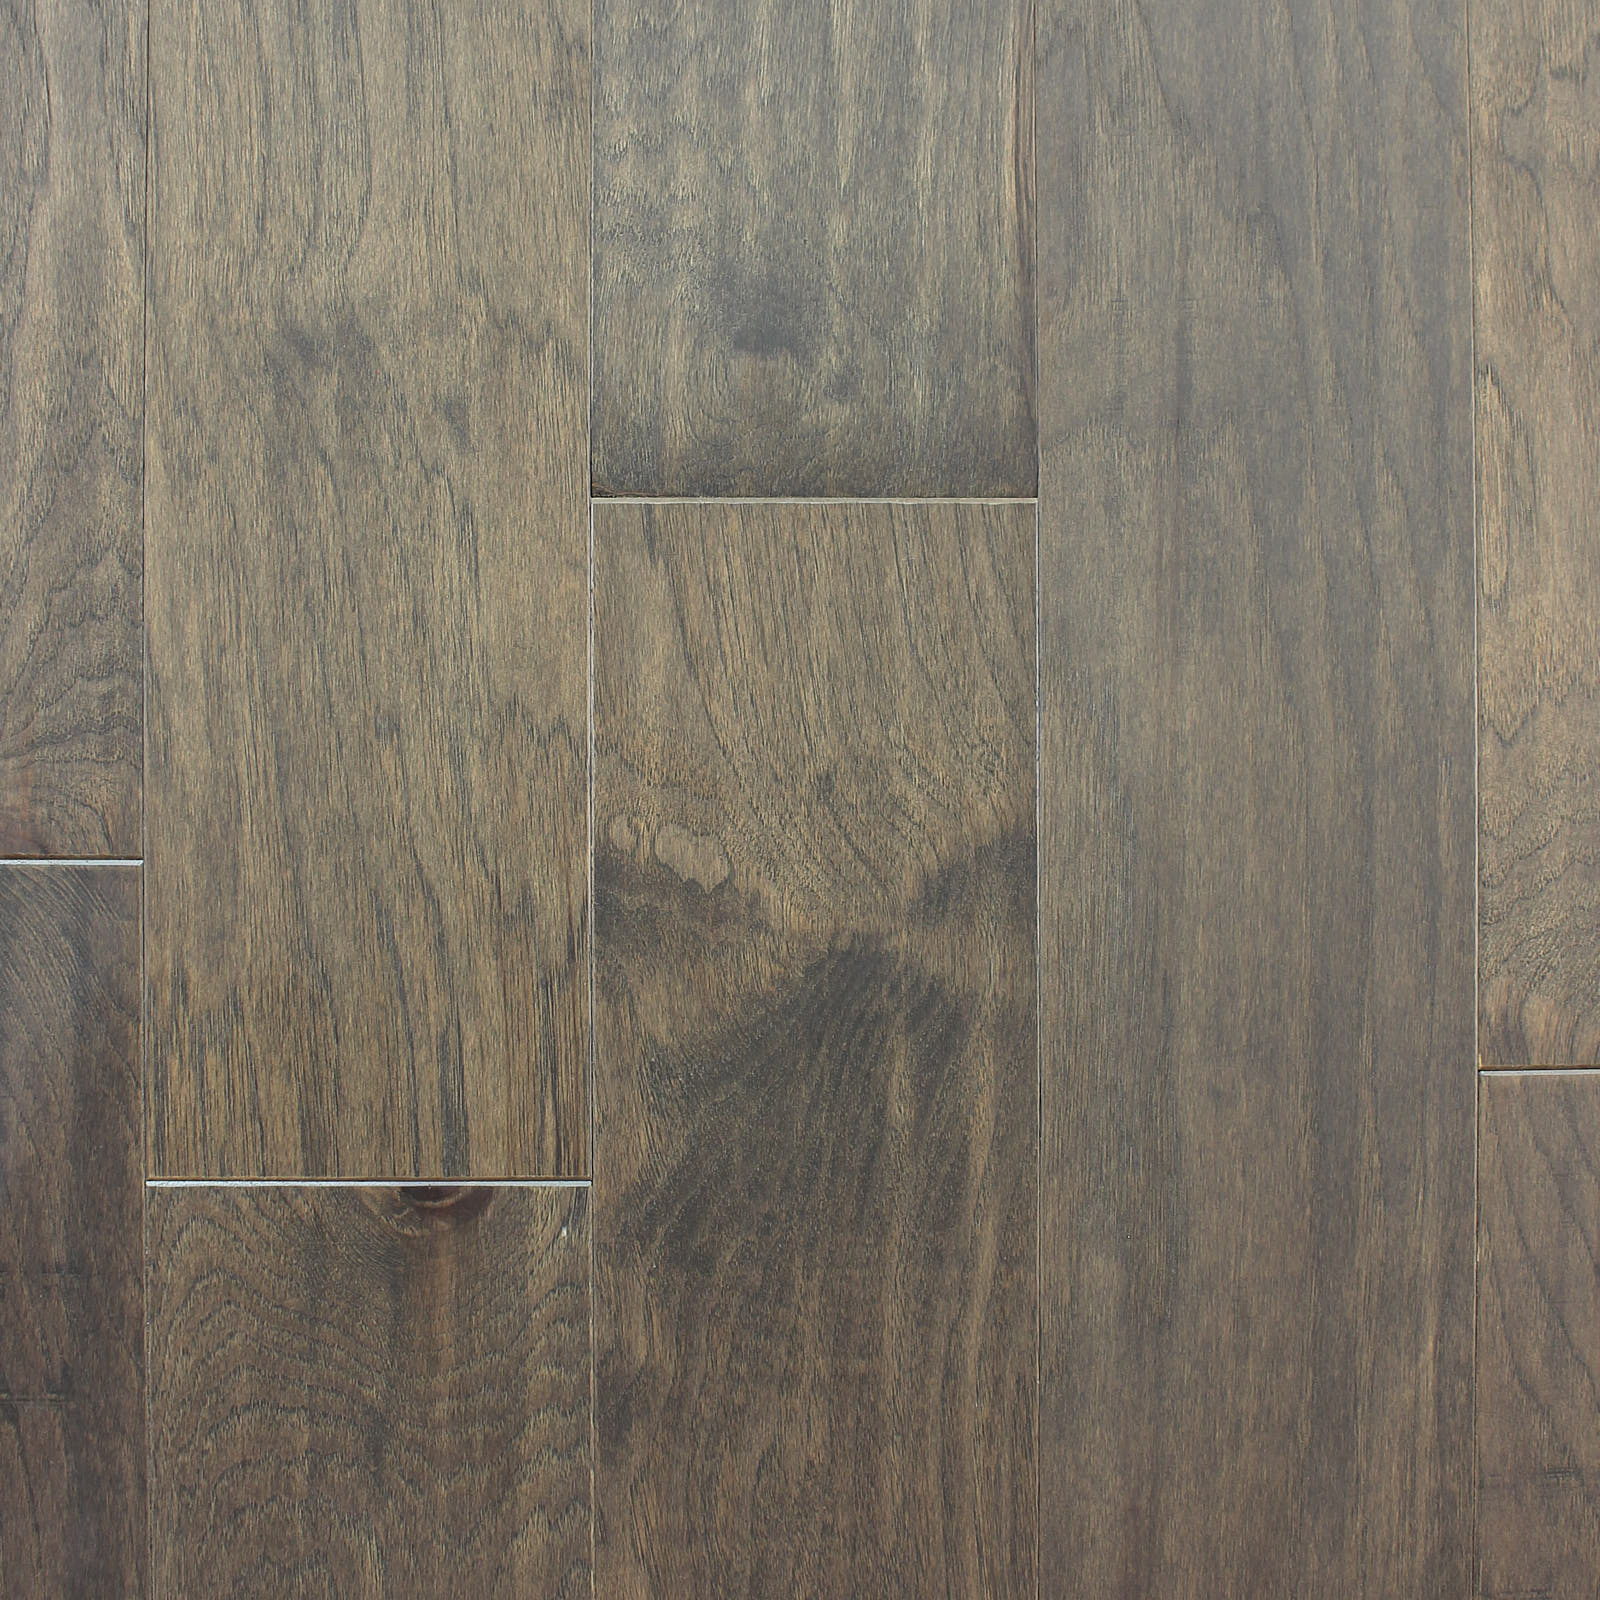 Lincoln Riverbend Engineered Hardwood Flooring